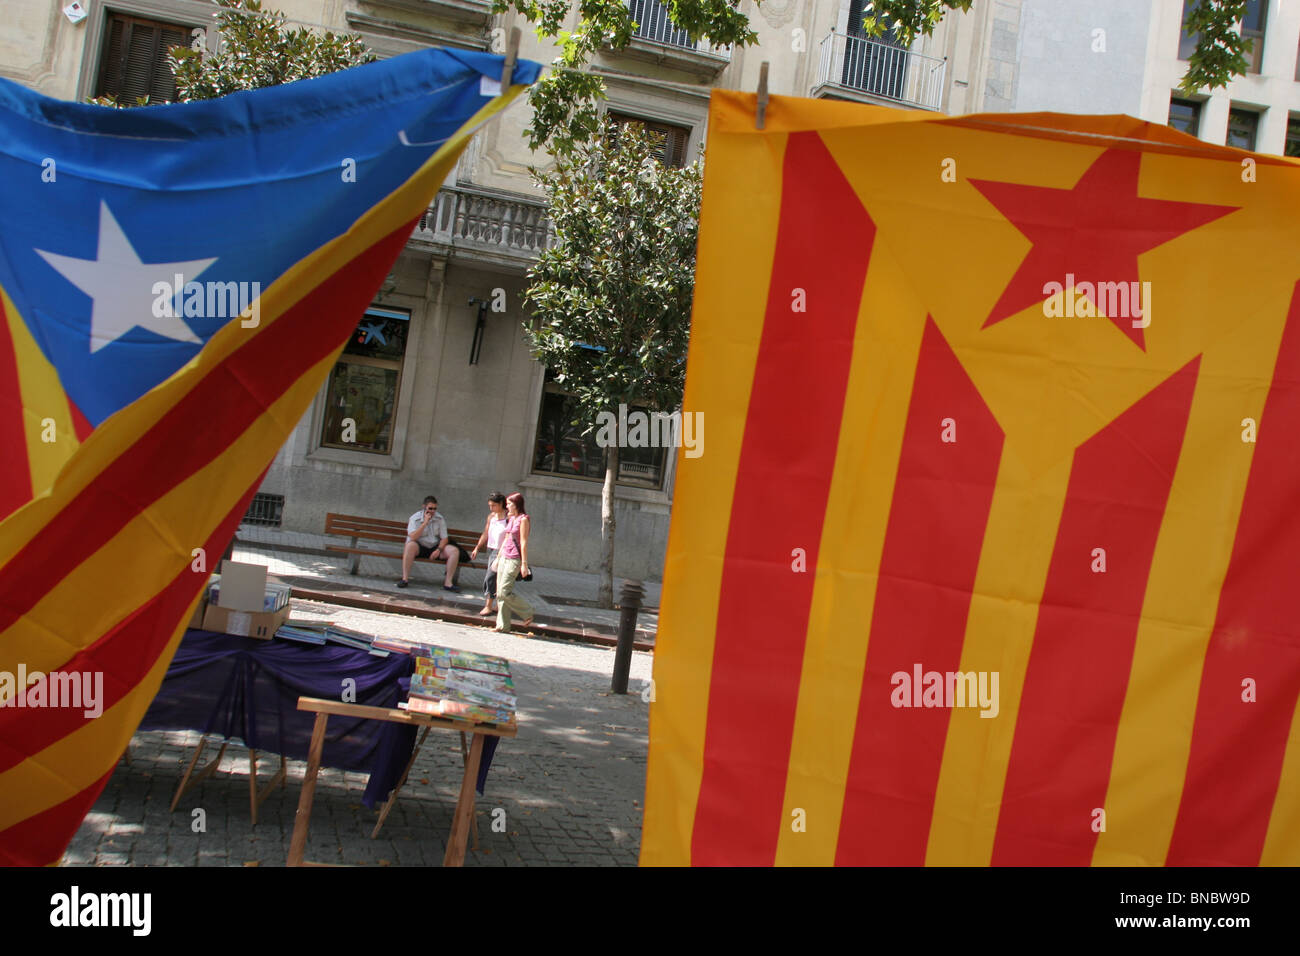 Stall selling flags and pin badges of Catalonian political parties/ separatist movement, Girona /Gerona, Catalonia, - Stock Image